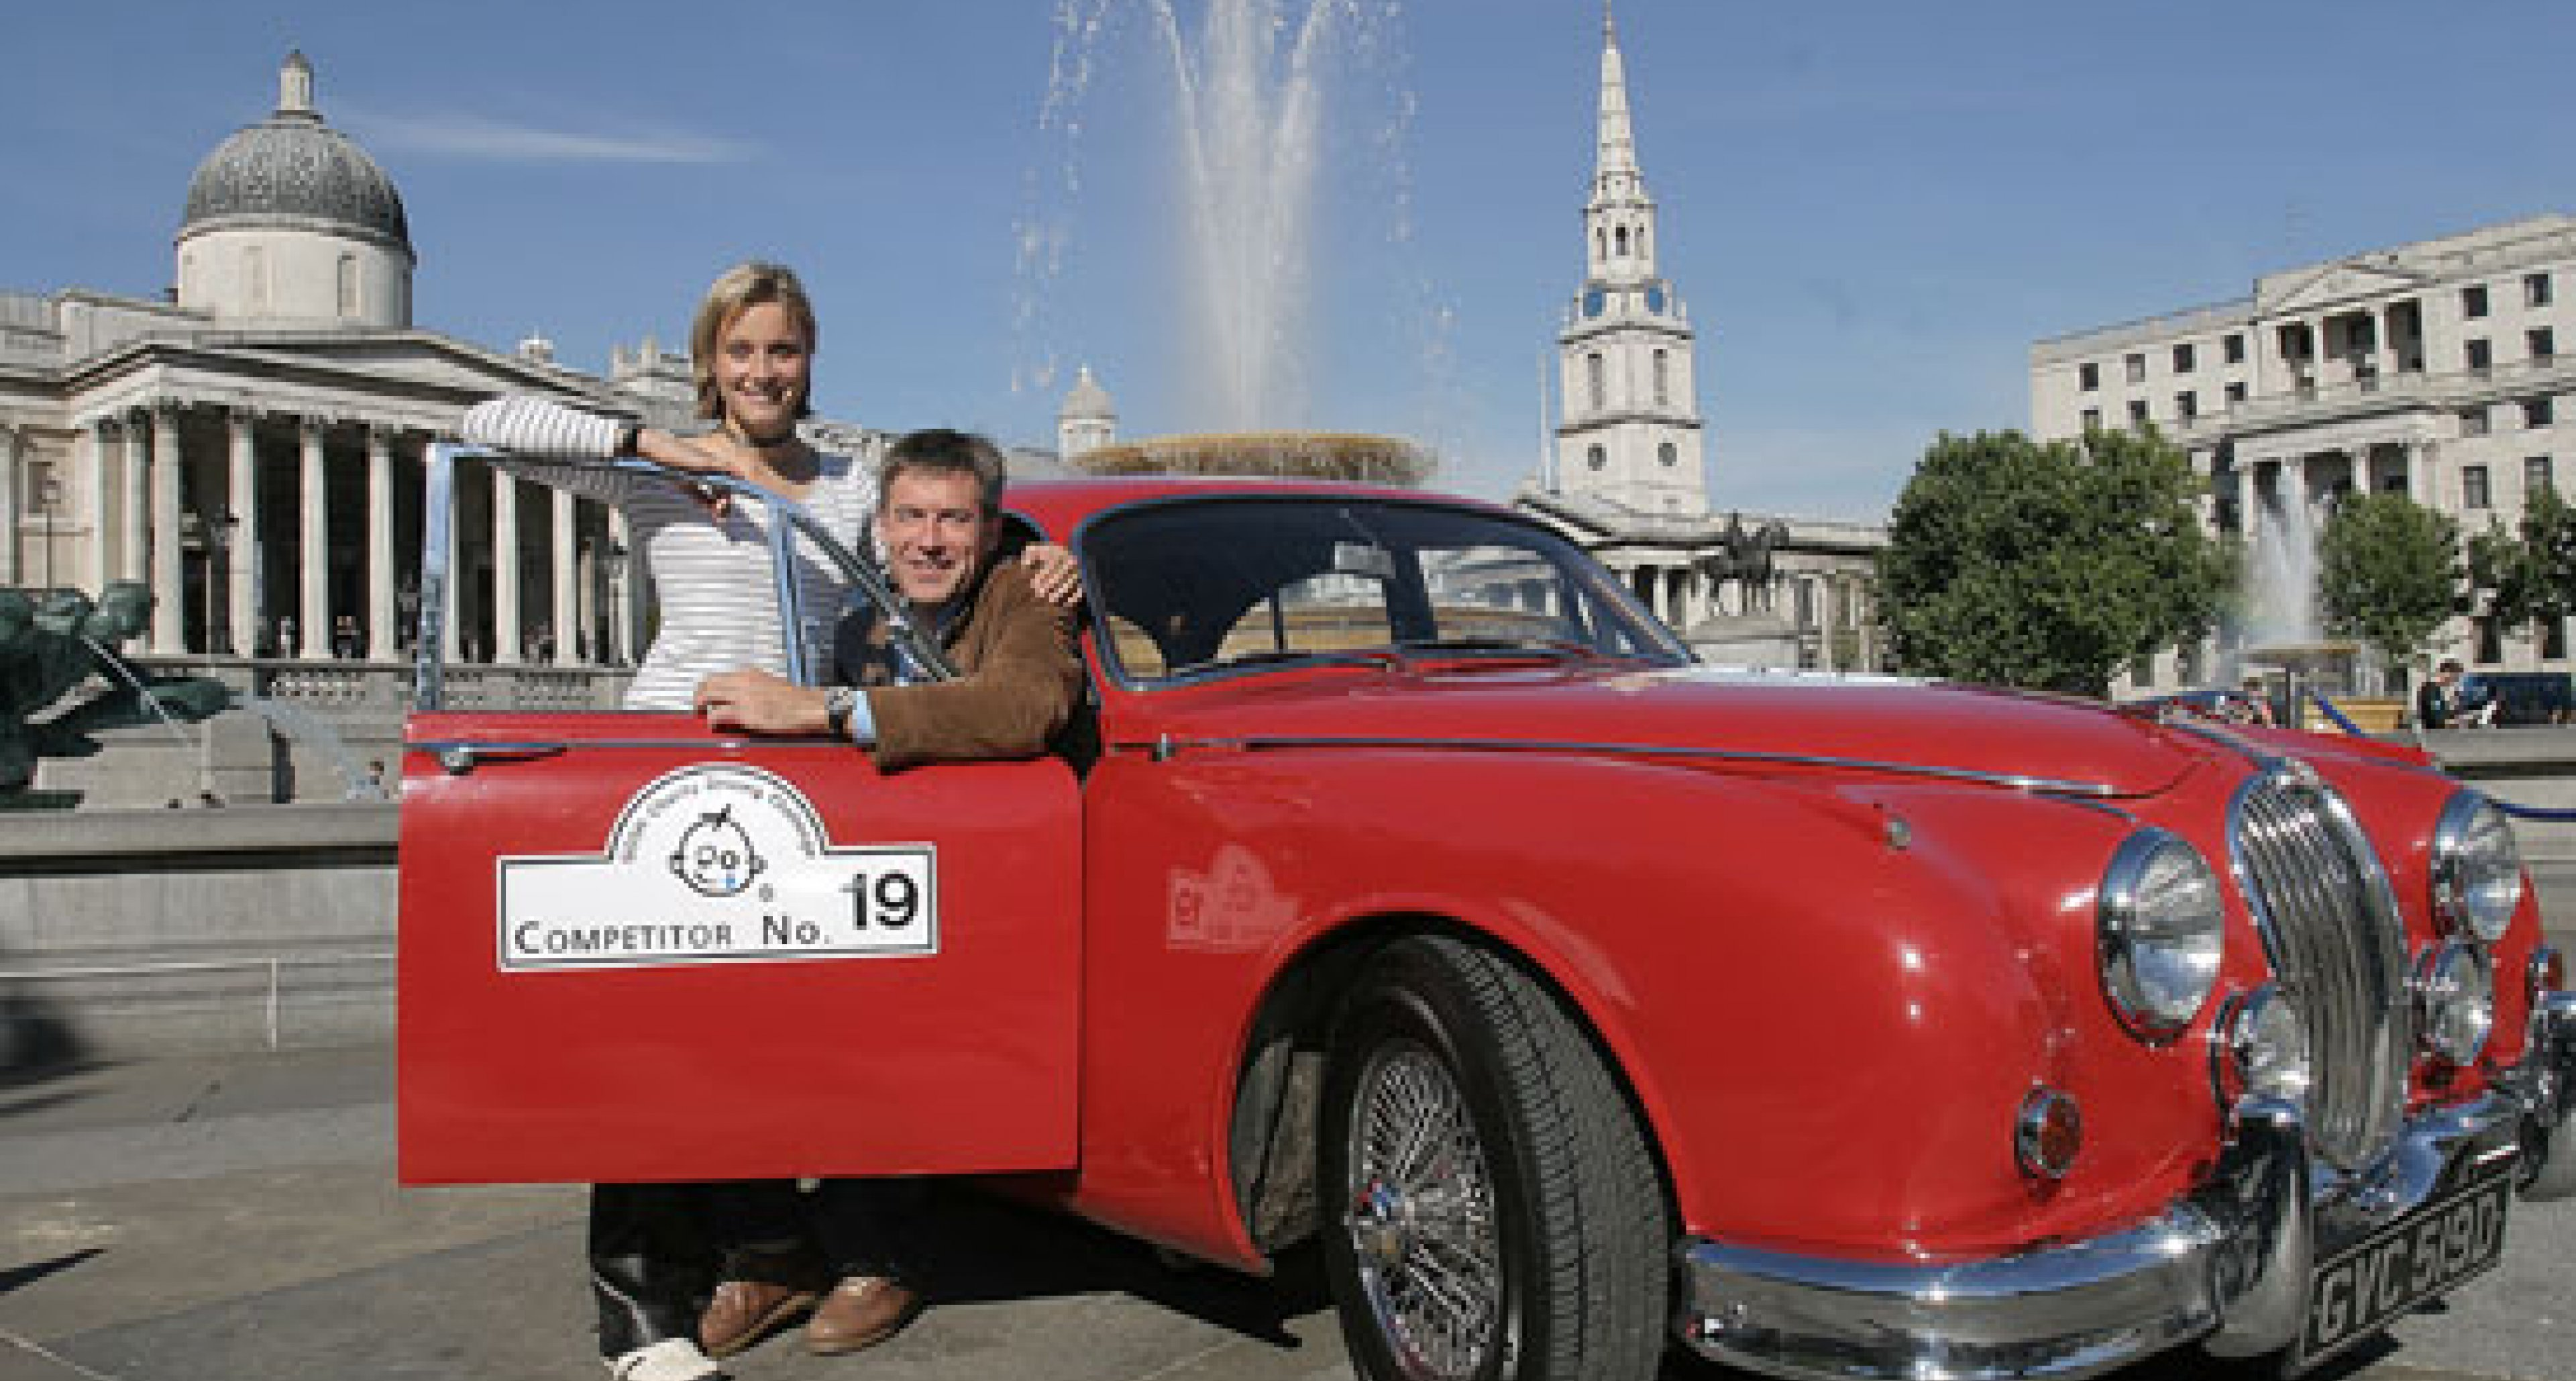 The GOSH Charity Driving Challenge launches in London's Trafalgar Square